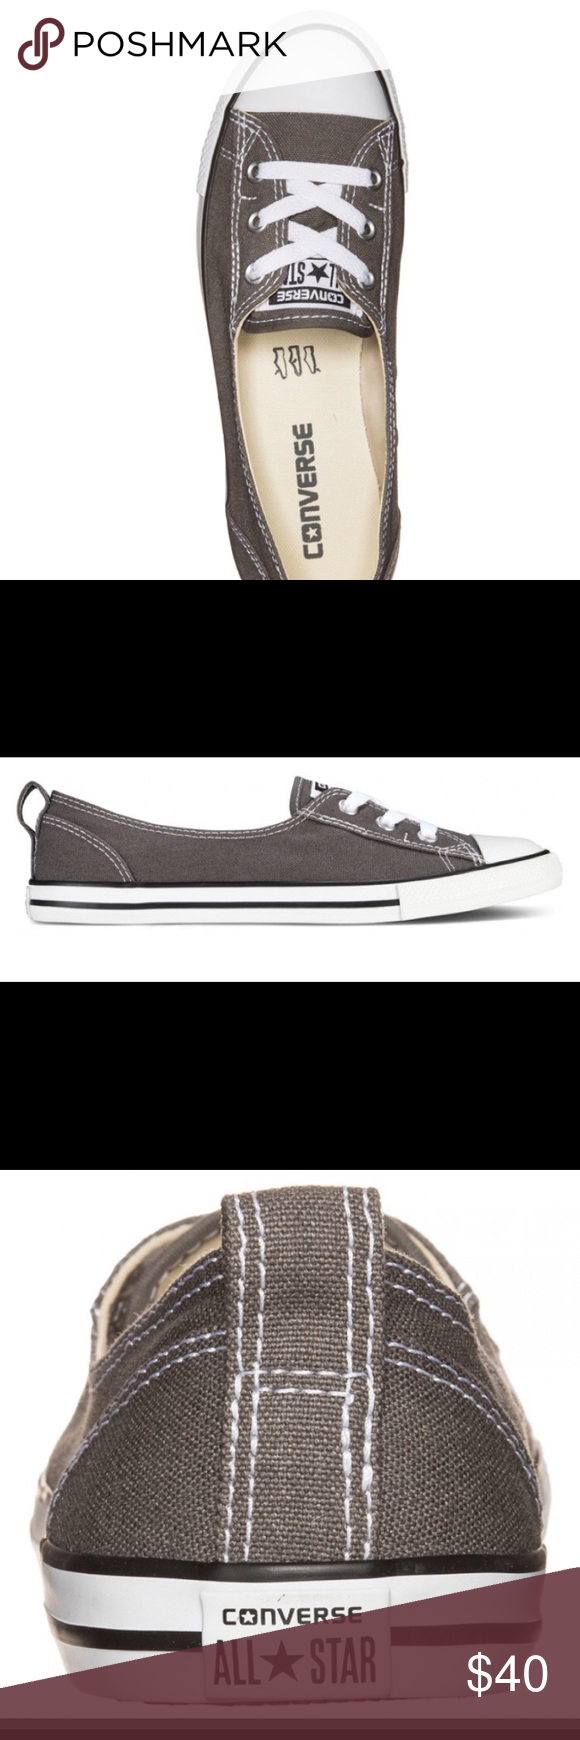 3db6a9e8c649 CONVERSE CHUCK TAYLOR BALLET LACE SLIP CHARCOAL Combining both a classic  flat and converse Chuck Taylor